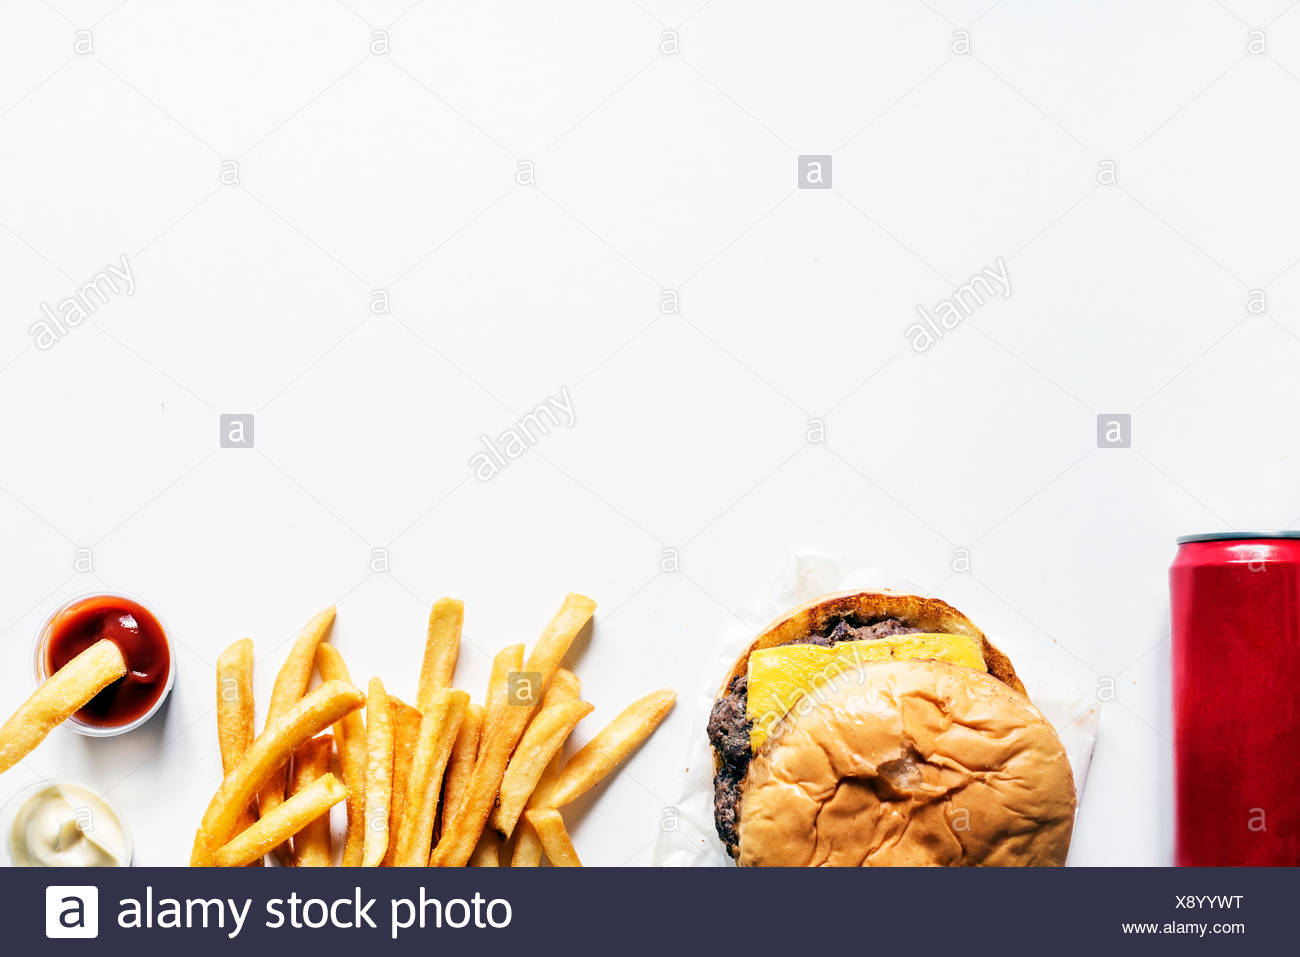 Aerial view of burger and fries fast food - Stock Image